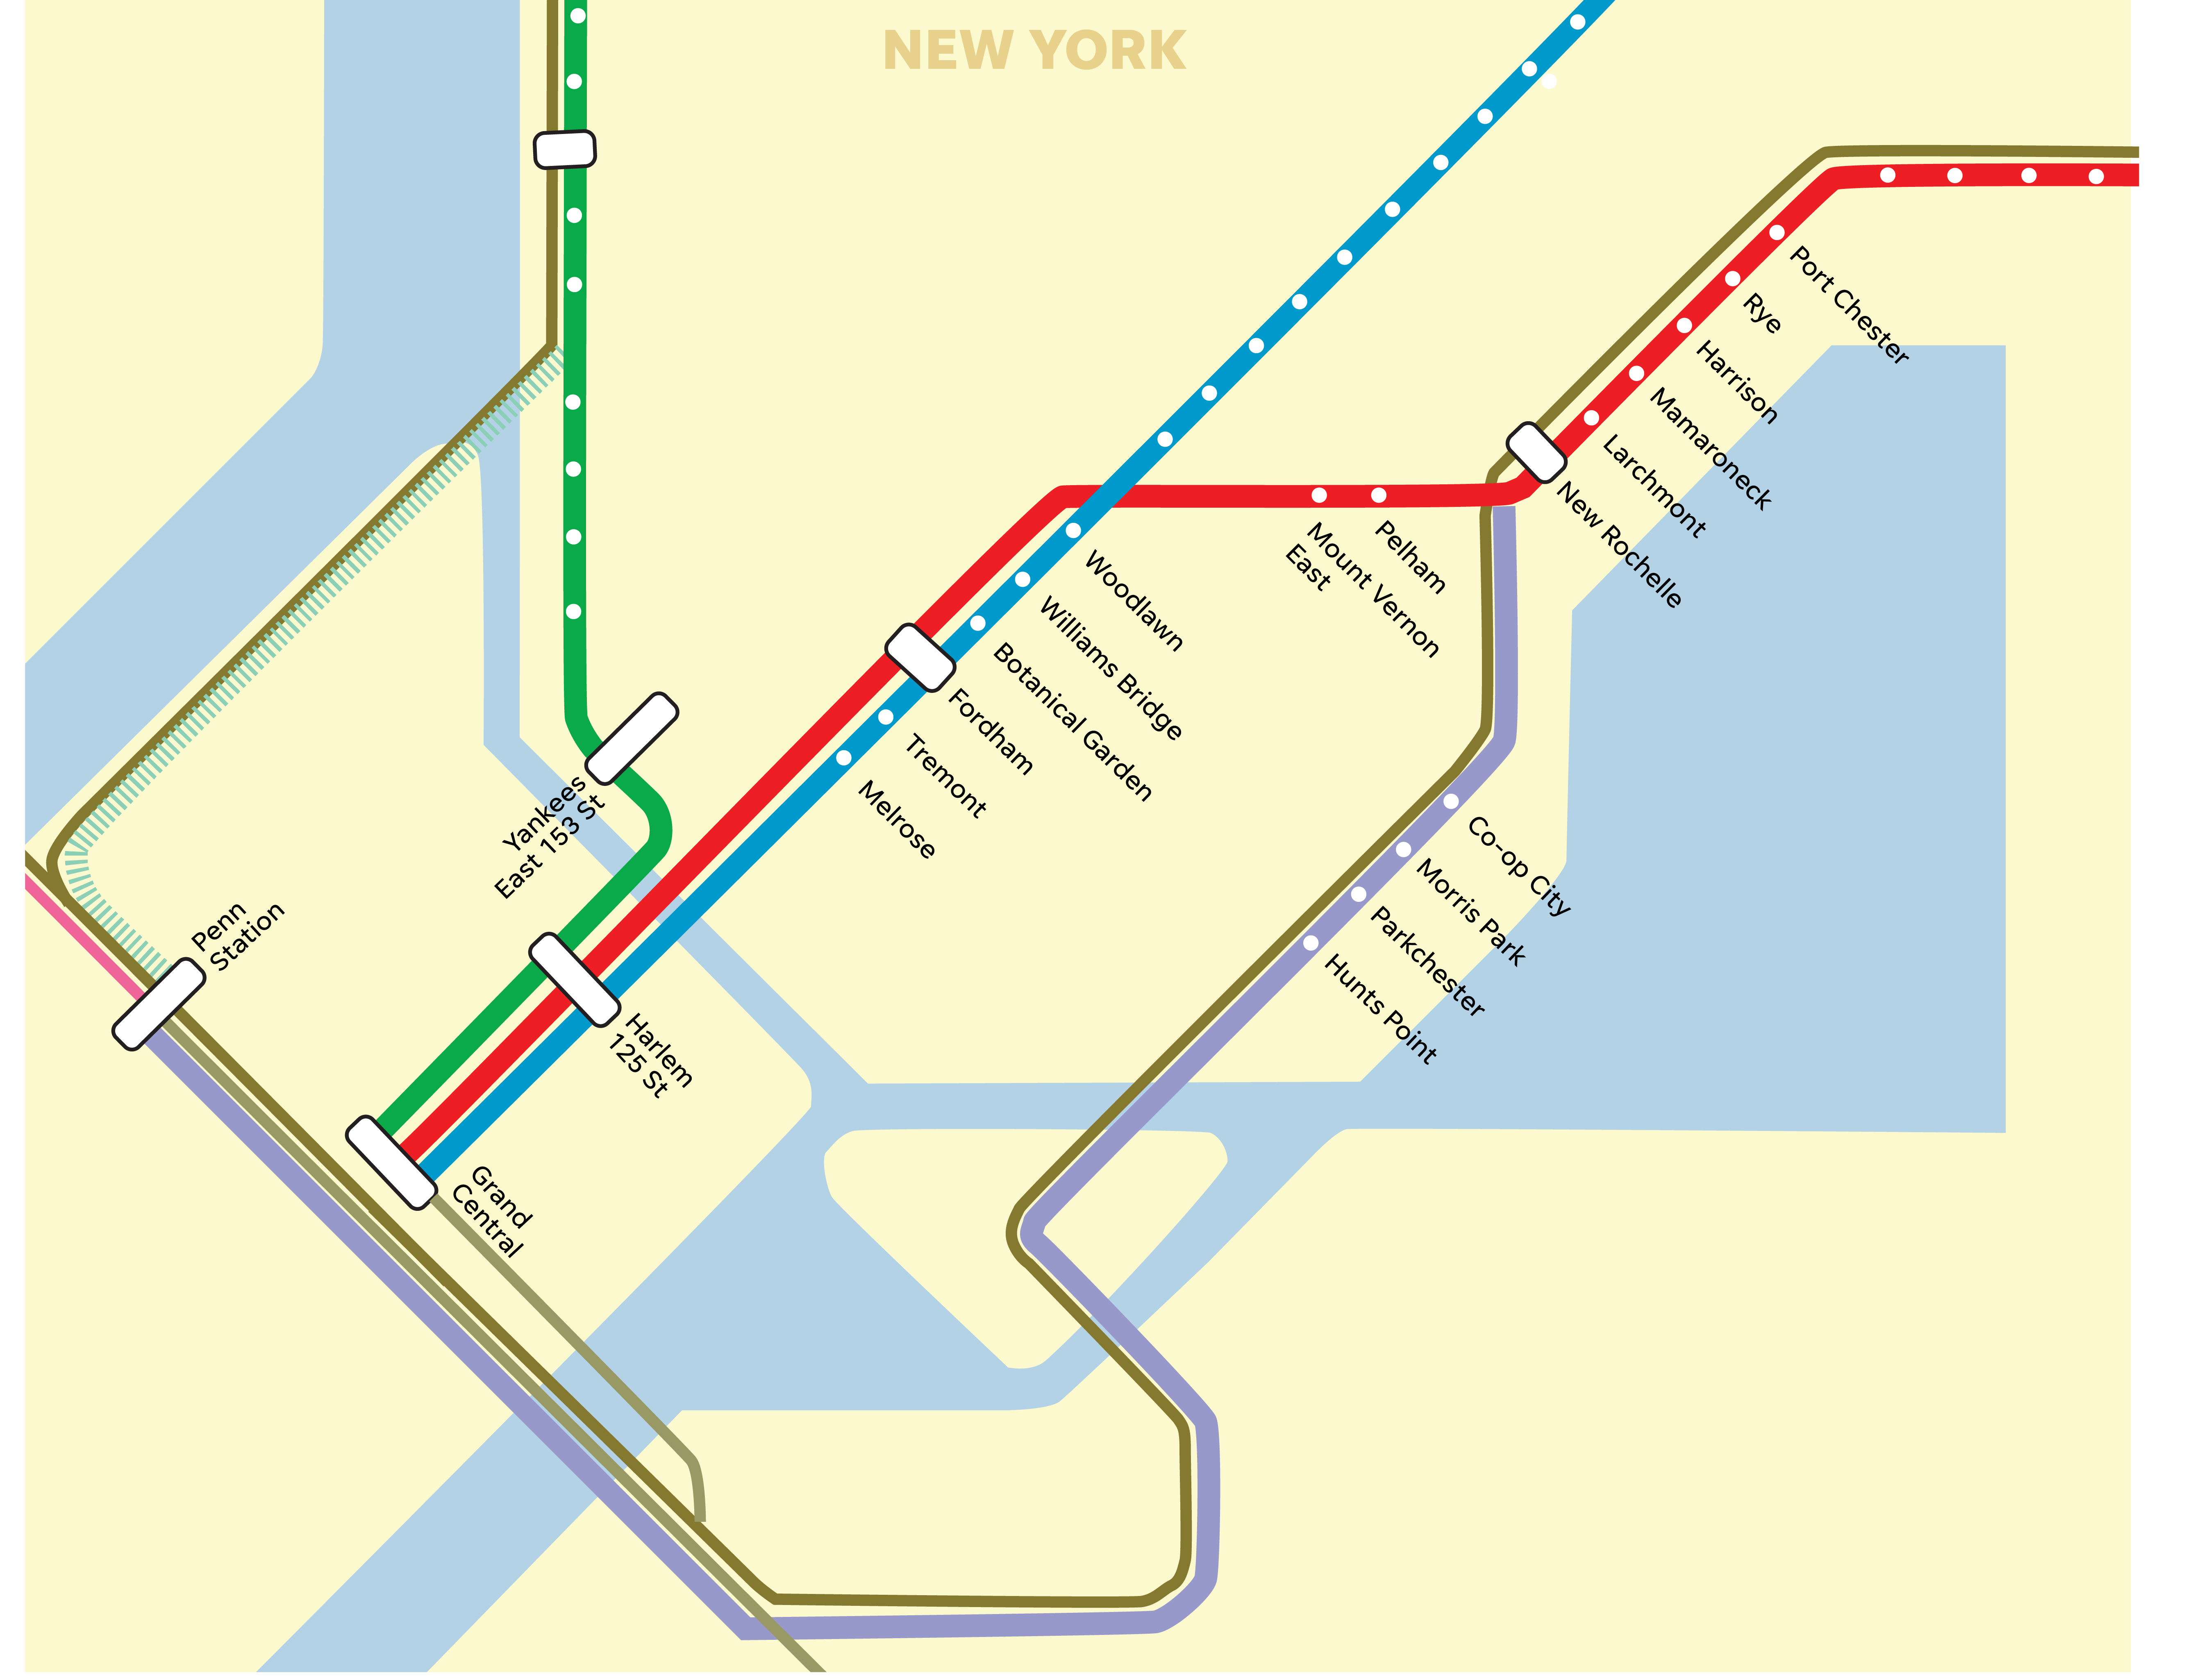 Rail plan that would open Manhattan's West Side to ... Current Amtrak National Route Map on amtrak route map pdf, amtrak sunset limited route map, amtrak new york route map, amtrak train routes, amtrak northeast route map, amtrak empire builder route map, us amtrak route map, amtrak acela route map, amtrak cardinal route map, amtrak pioneer route map, desert wind amtrak route map, amtrak south west chief route map, silver star amtrak route map, csx route map, amtrak route atlas logo, greyhound national route map, amtrak route map east coast, amtrak sleeper cars, amtrak nationwide route map, amtrak coast starlight route map,